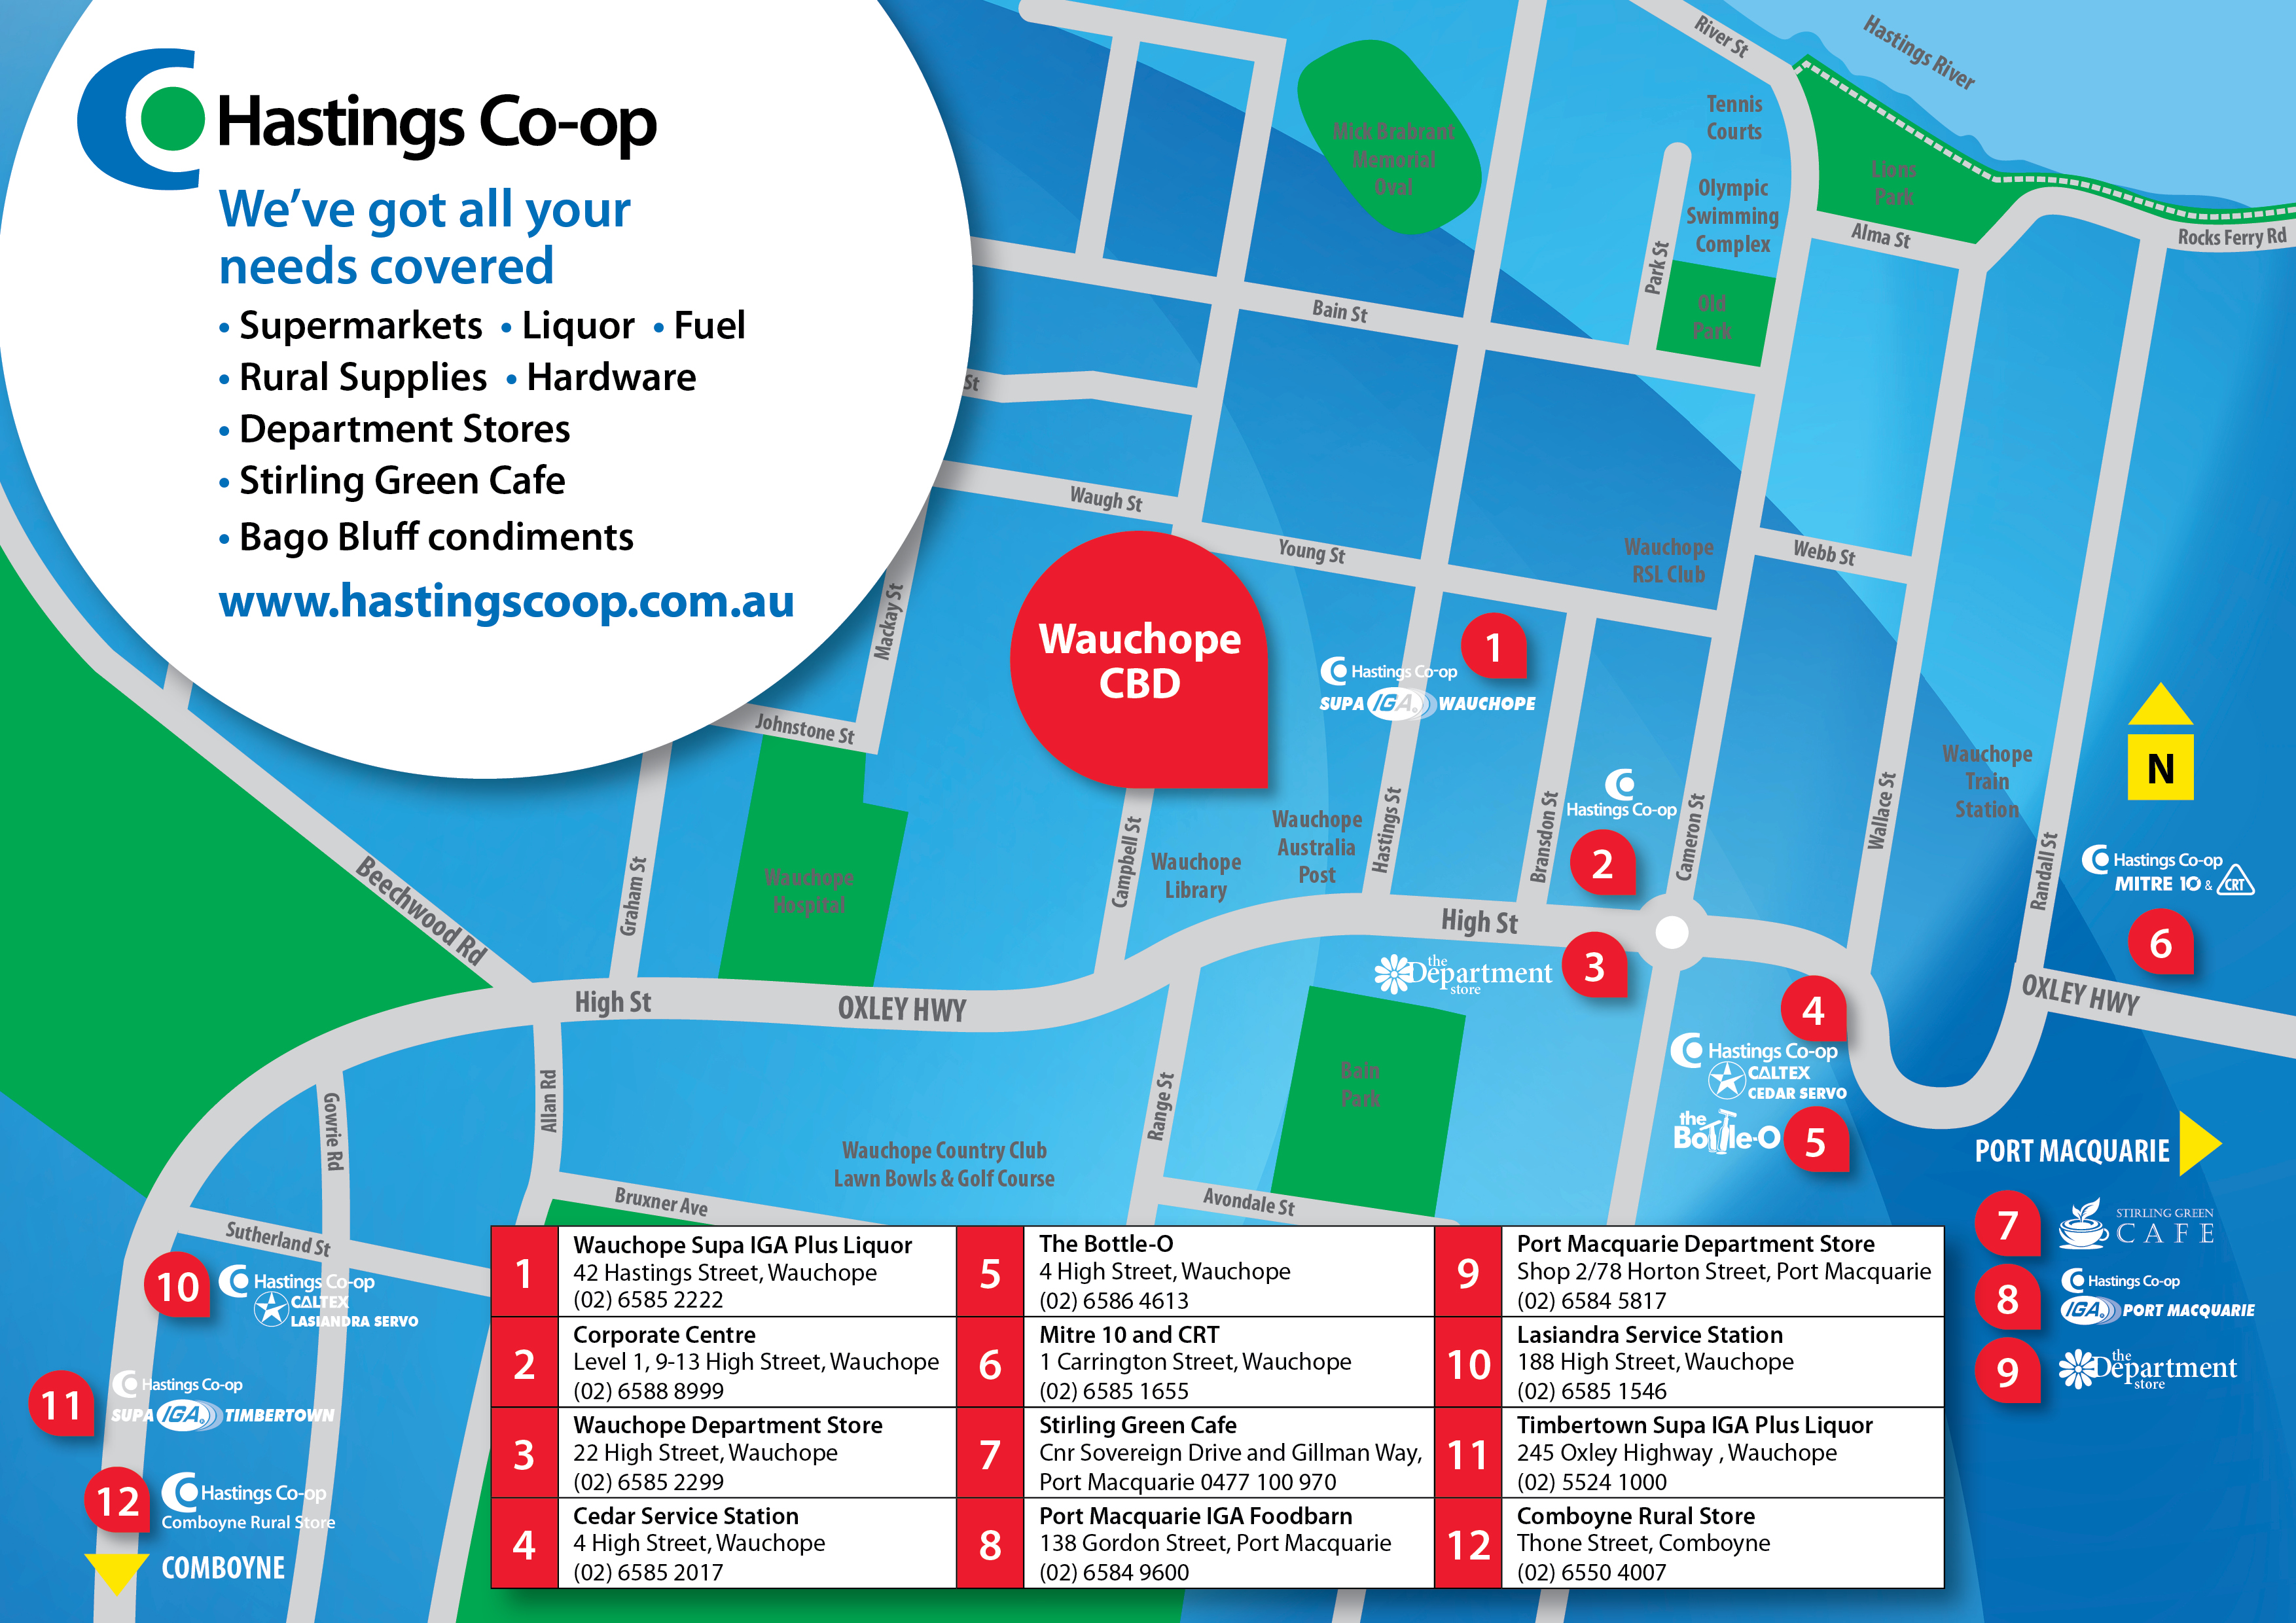 Hastings Co-op map of businesses